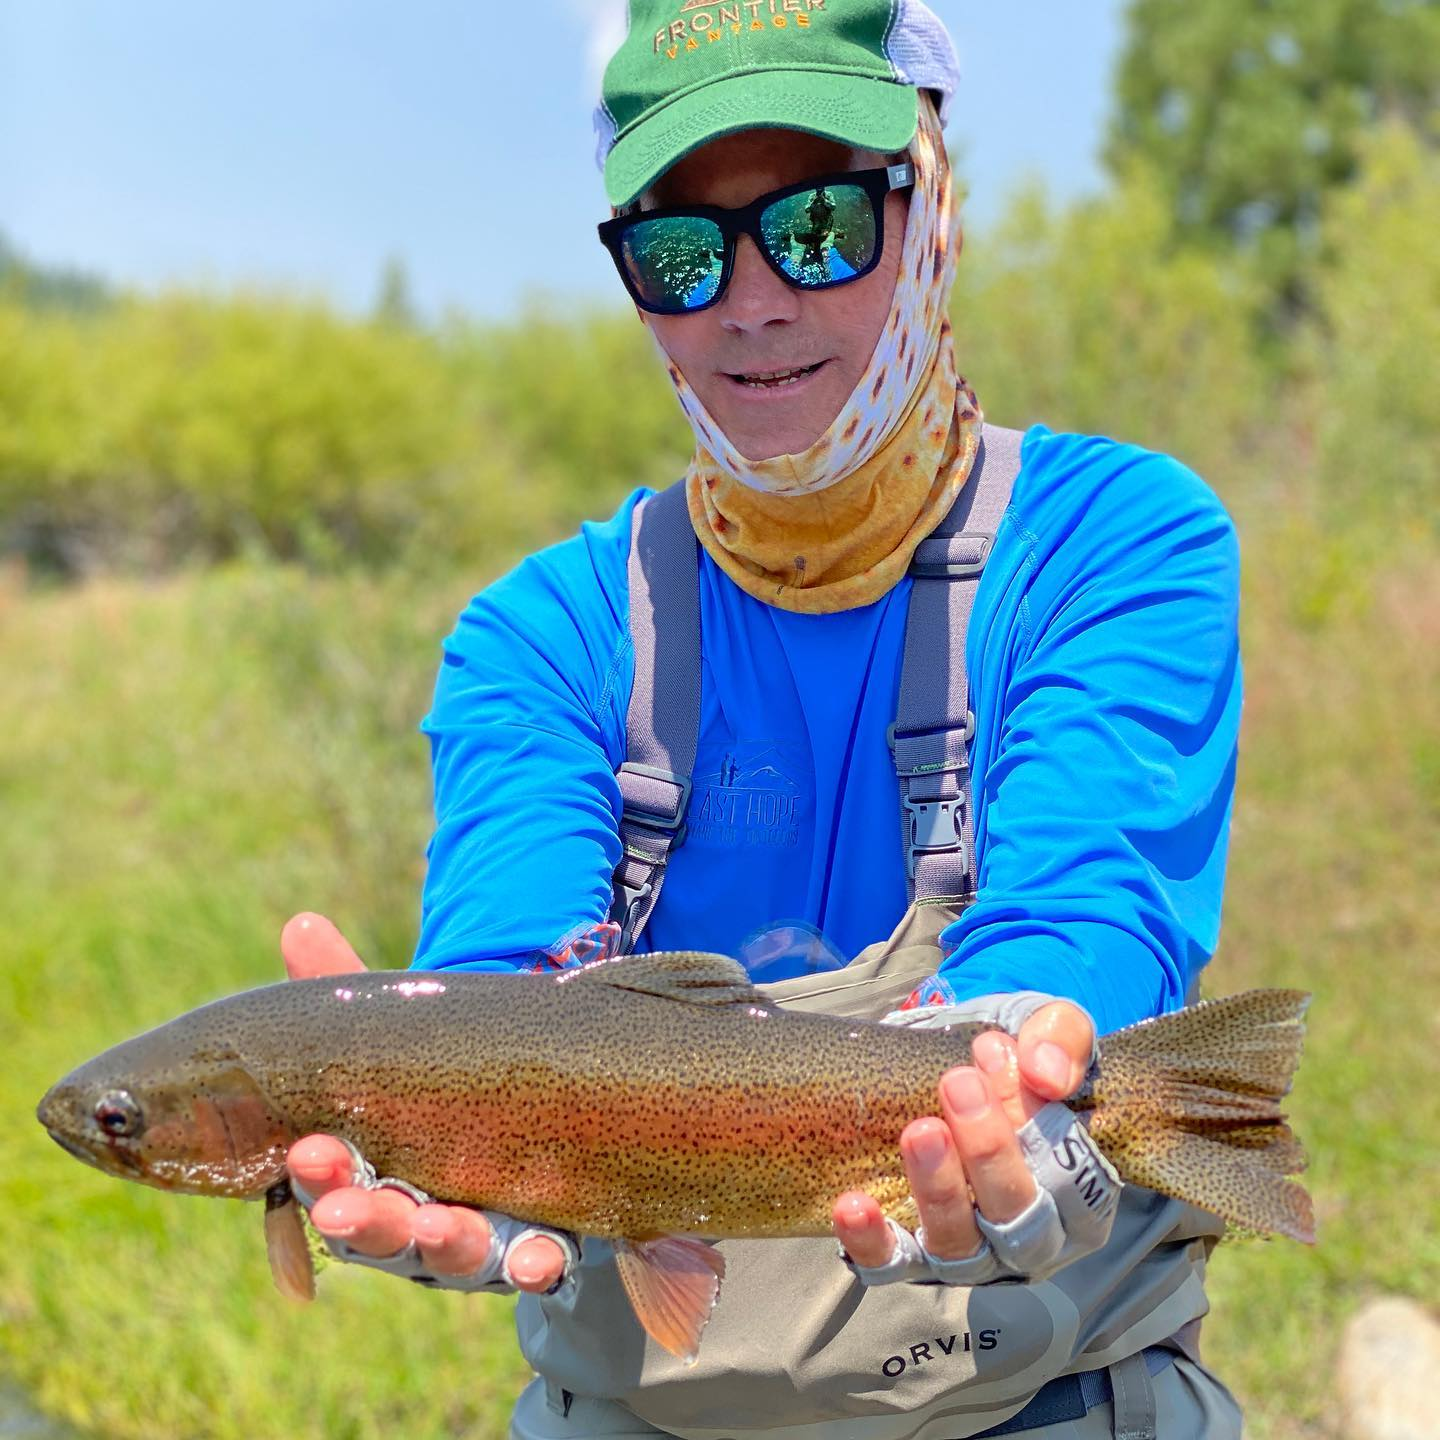 """Still some really good fishing to be had in our area … Get out and practice your best """"social distancing"""" with us !#alpineflyfishing #wildtrout #catchandrelease #dryflyfishing #rainbow #fishitwell #getoutside #flyfishing #fishca #scottflyrods #fishpondusa"""